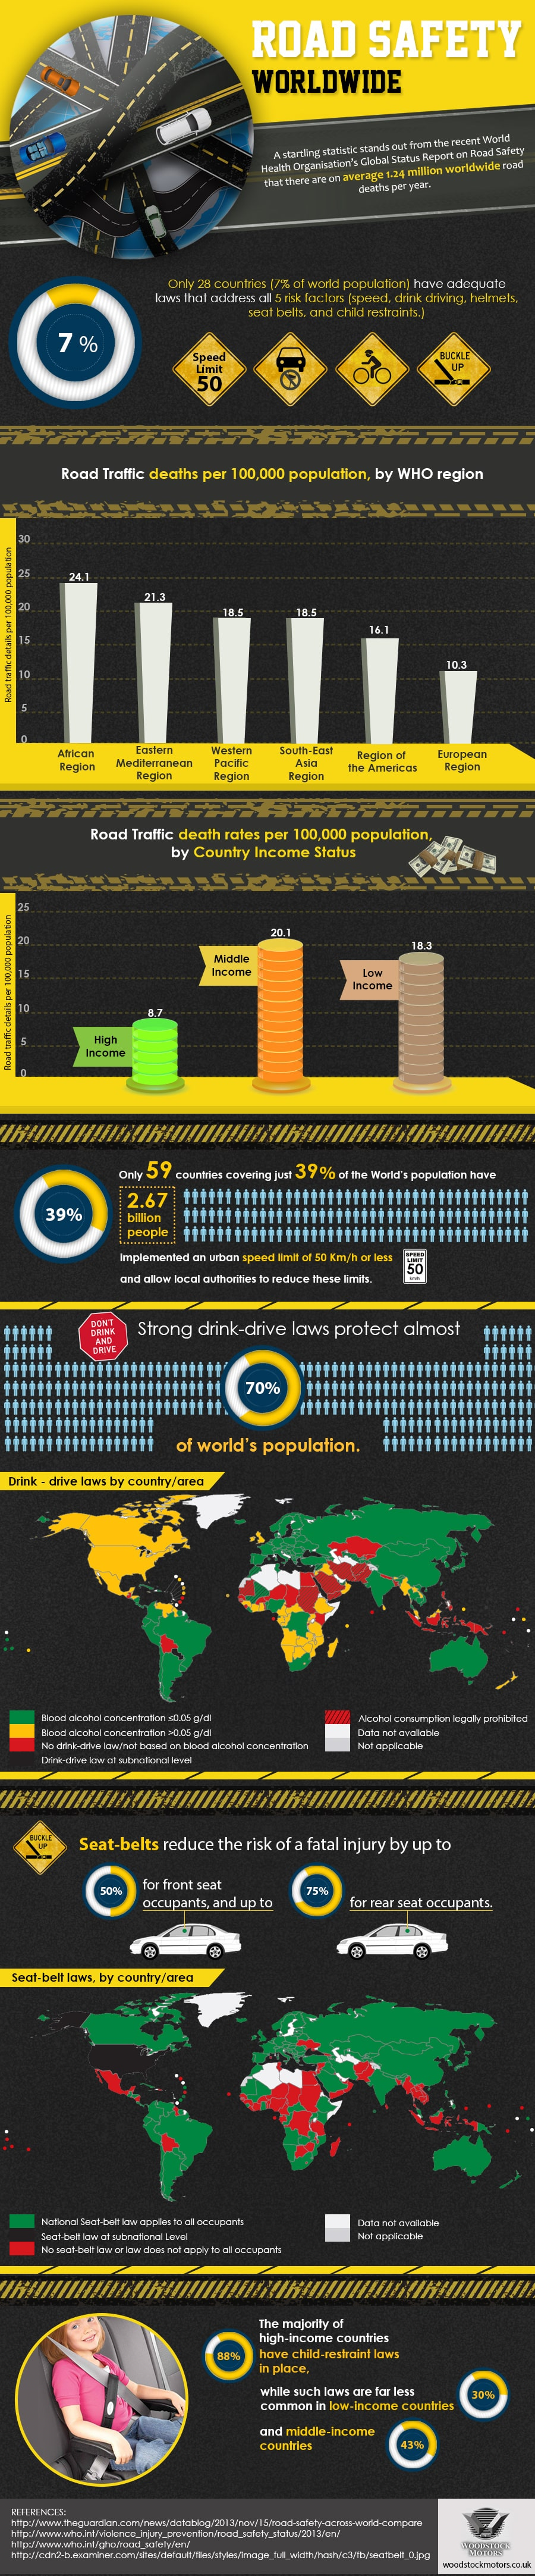 Road safety worldwide infographic (The Car Expert)